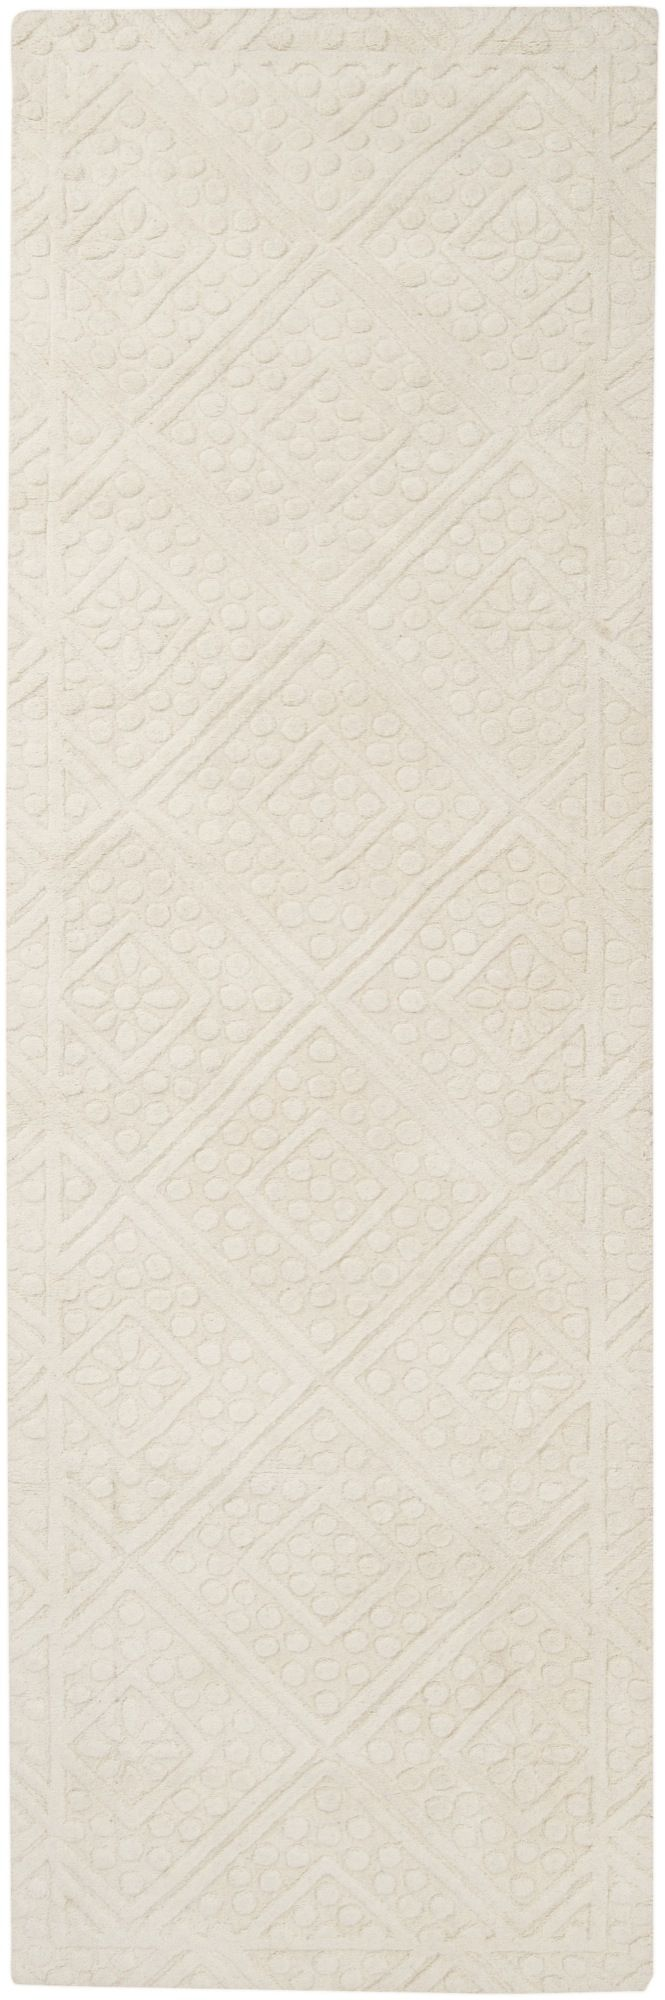 surya smithsonian solid/striped area rug collection